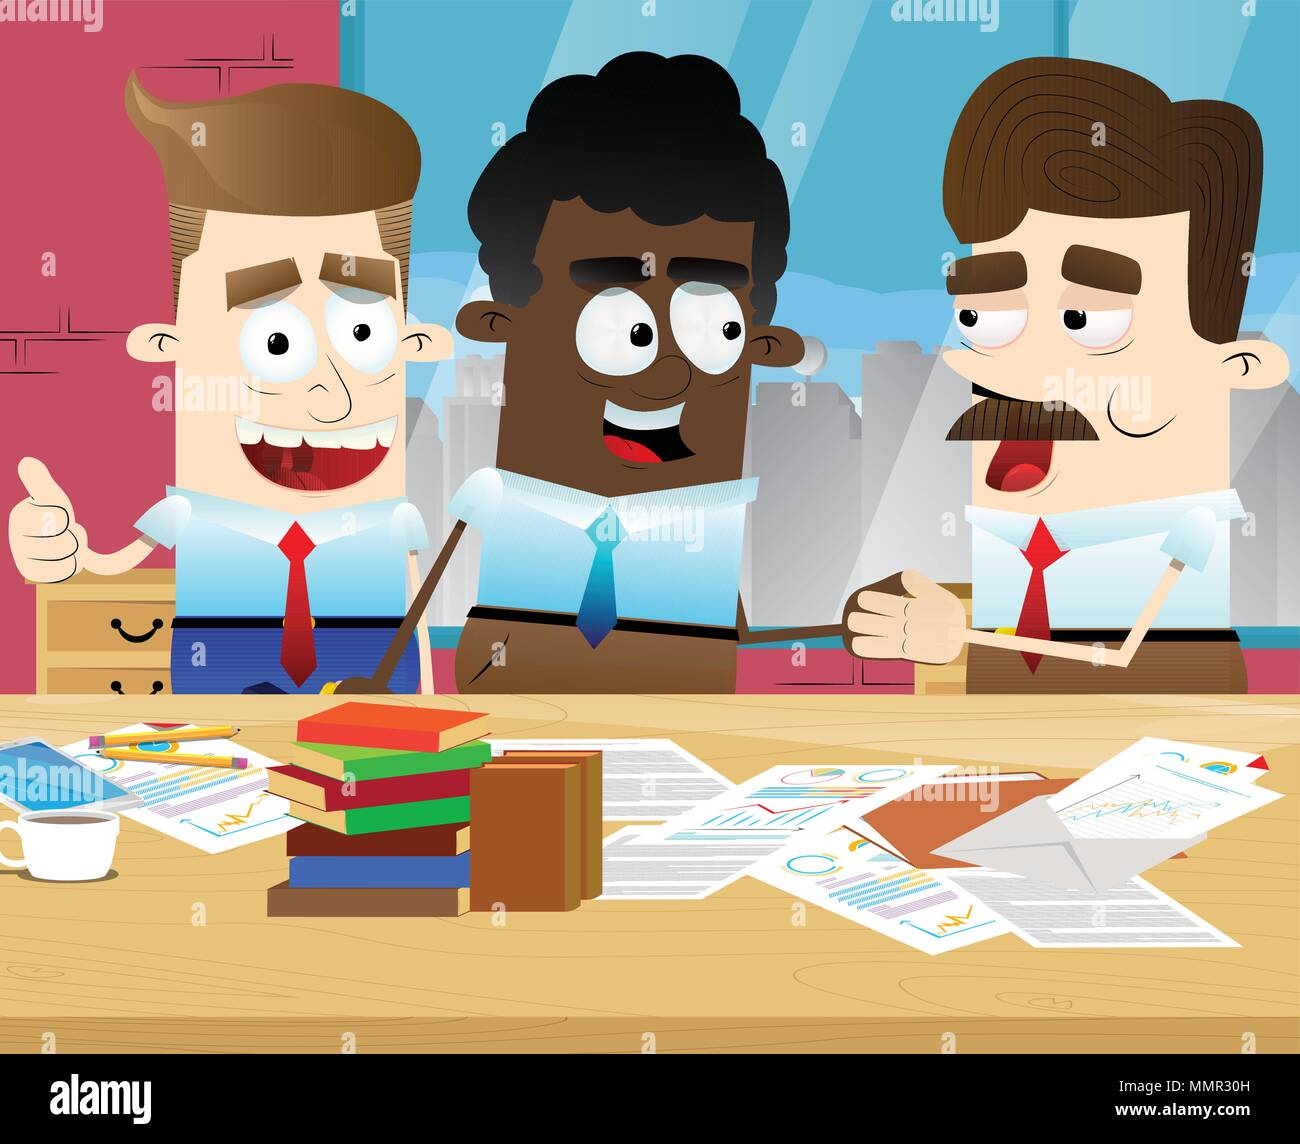 Two Businessmen shaking hands and a third showing ok sign in an office. Vector illustration of cartoon business concept. - Stock Vector